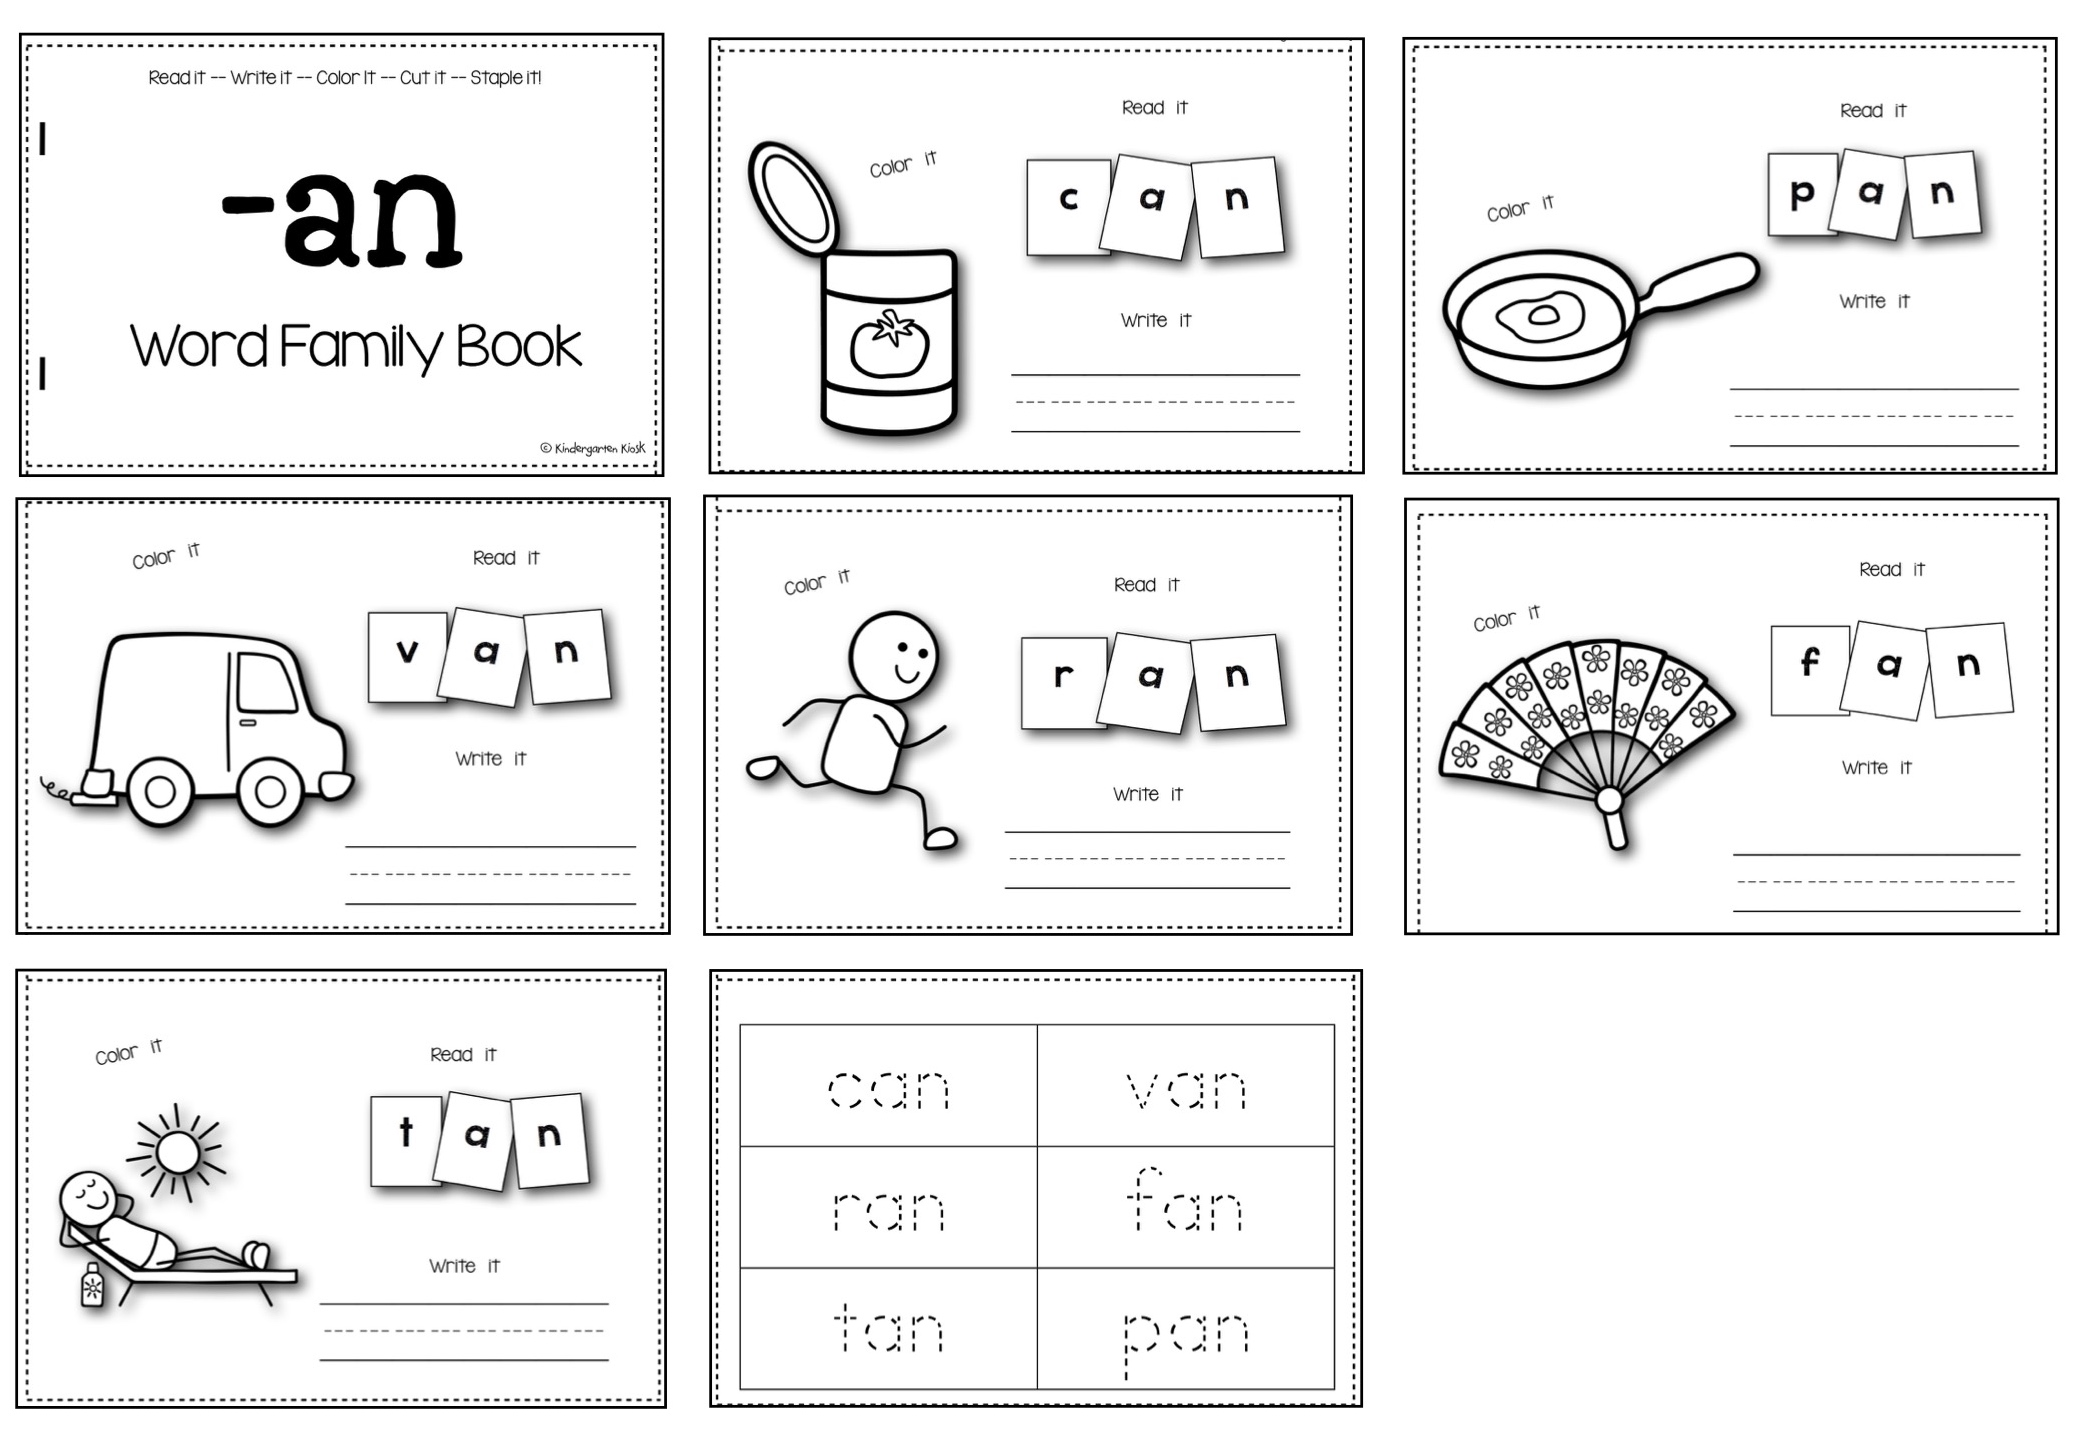 These pages can be stapled together to make a cute interactive little book for kids to read again and again.